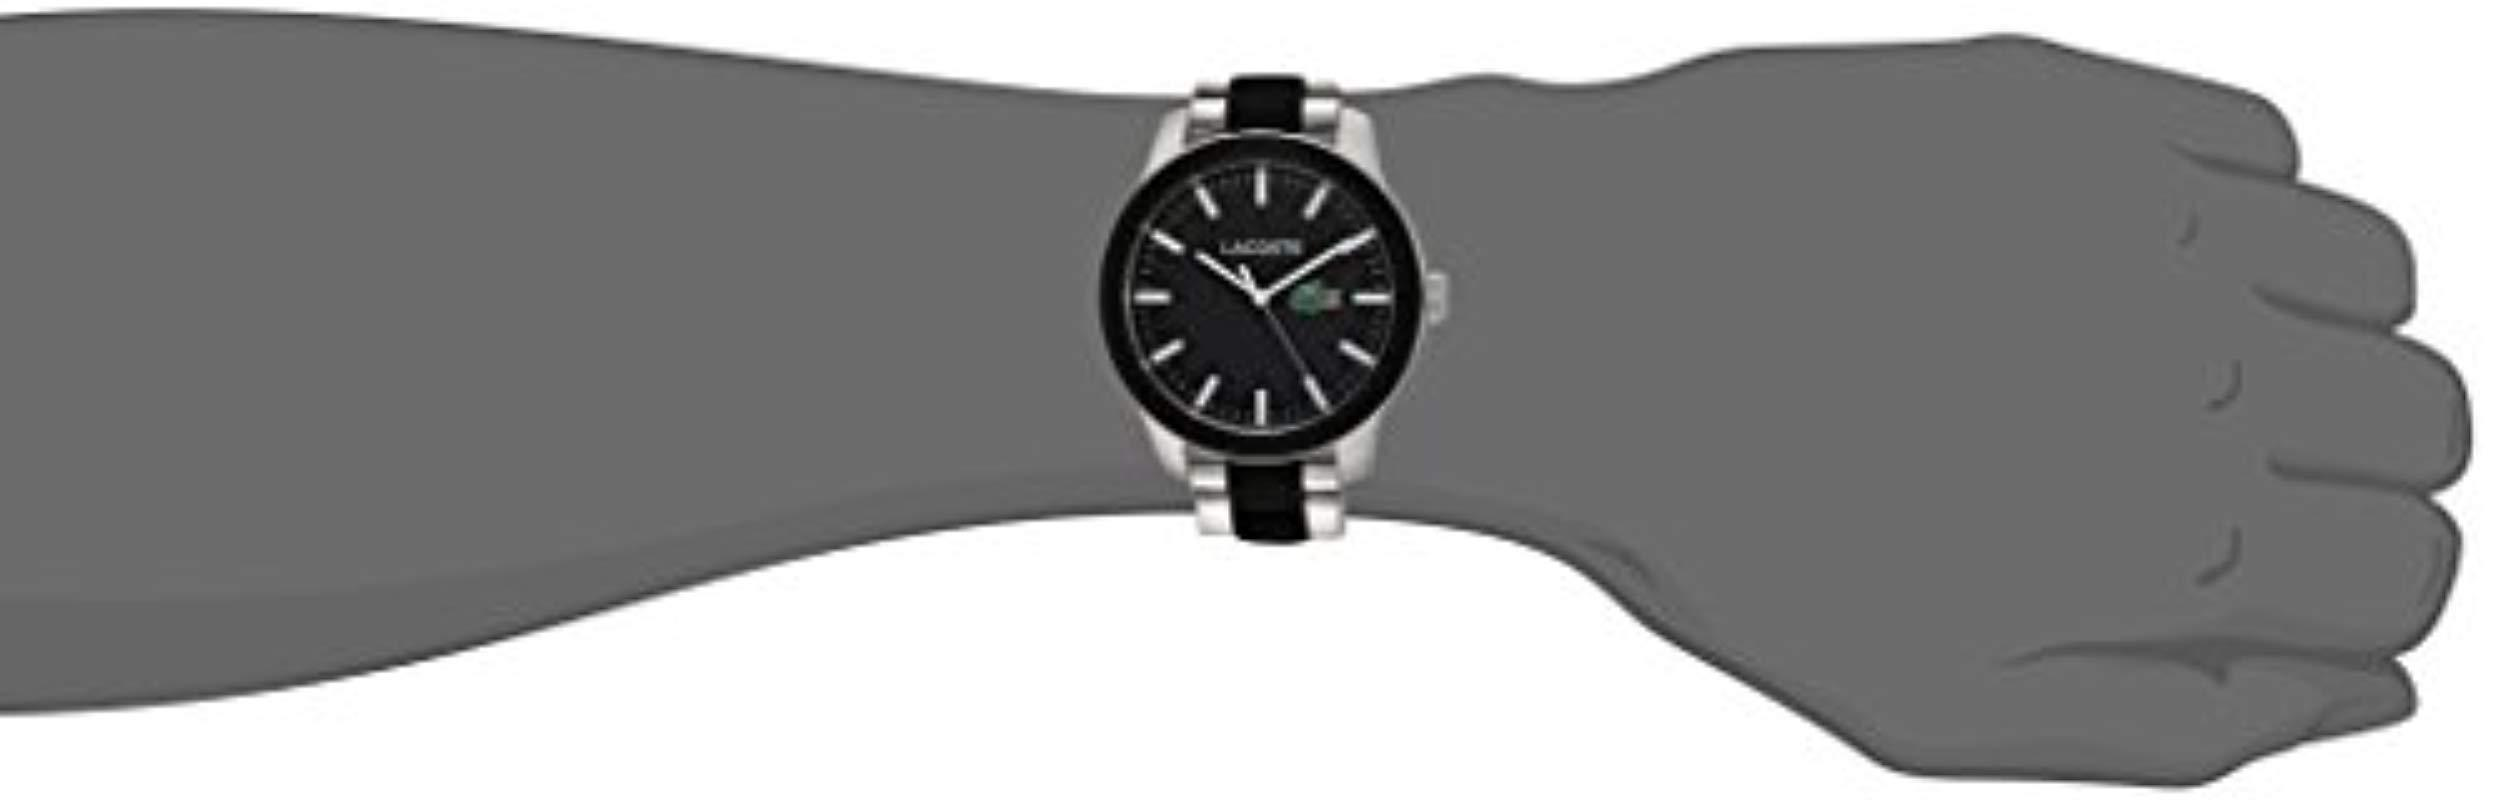 Lacoste - Black 12.12 Quartz Stainless Steel Casual Watch Multi Color for Men - Lyst. View fullscreen